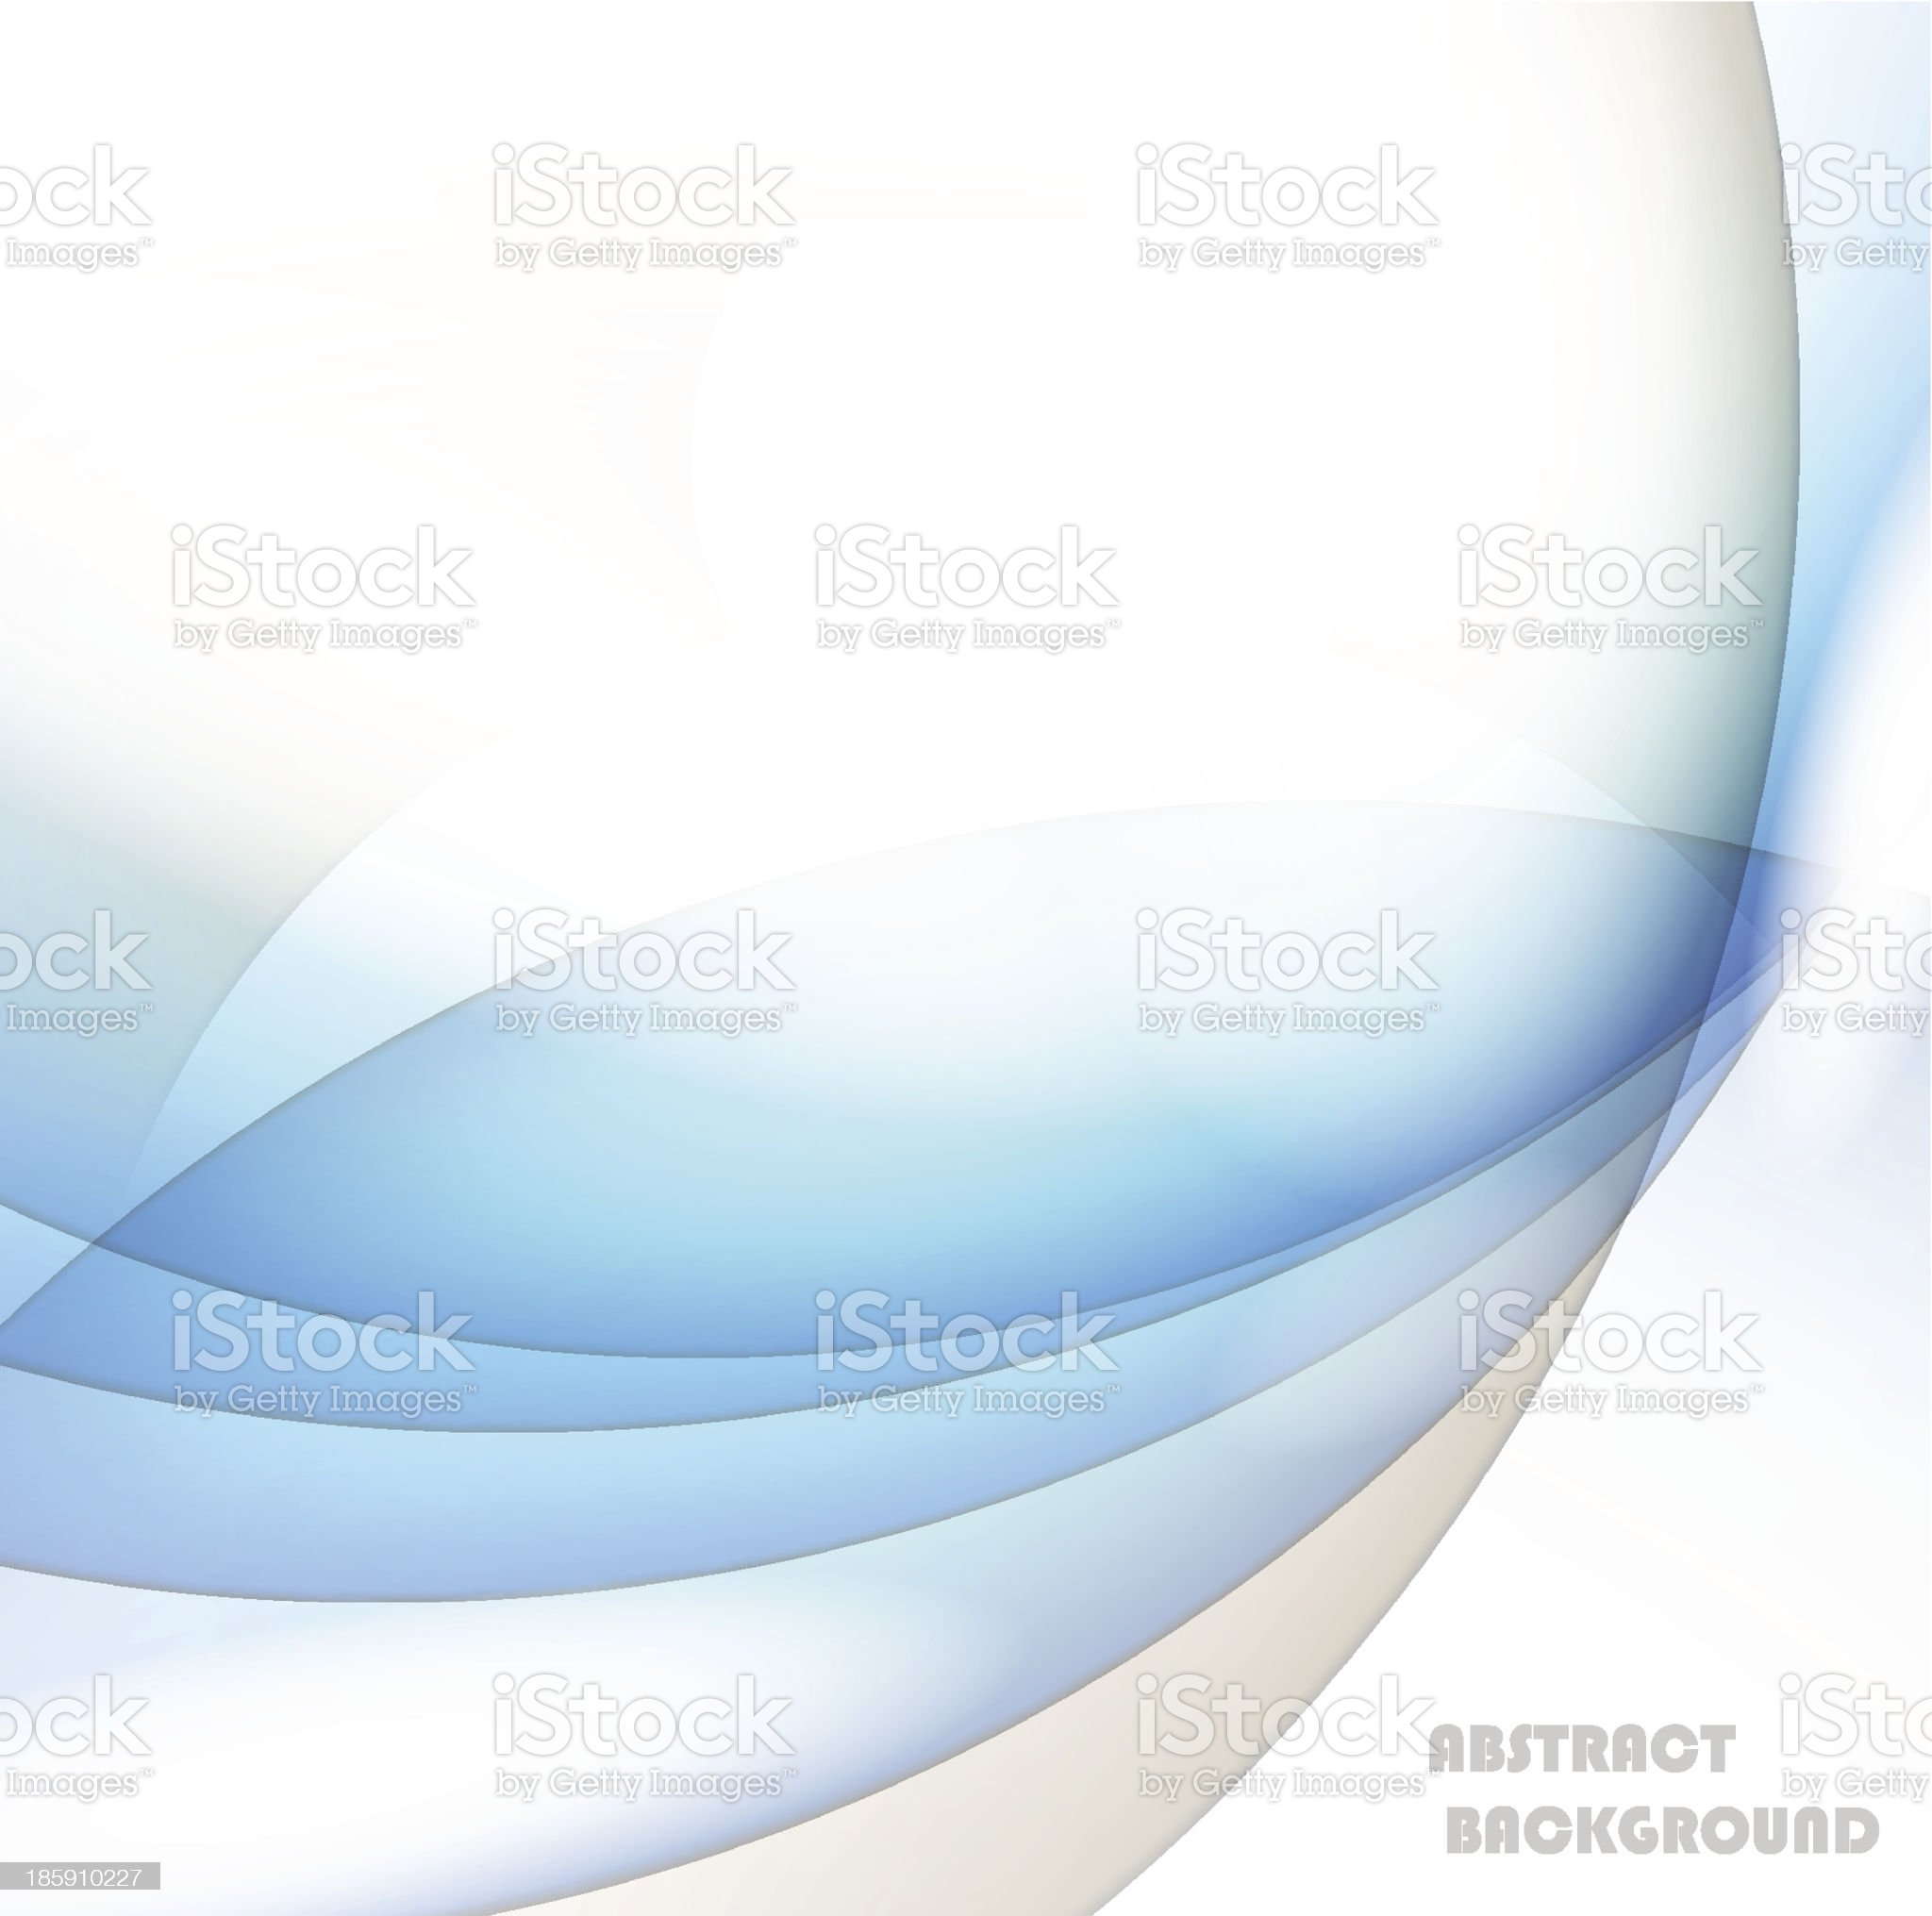 Abstract Line Background royalty-free stock vector art